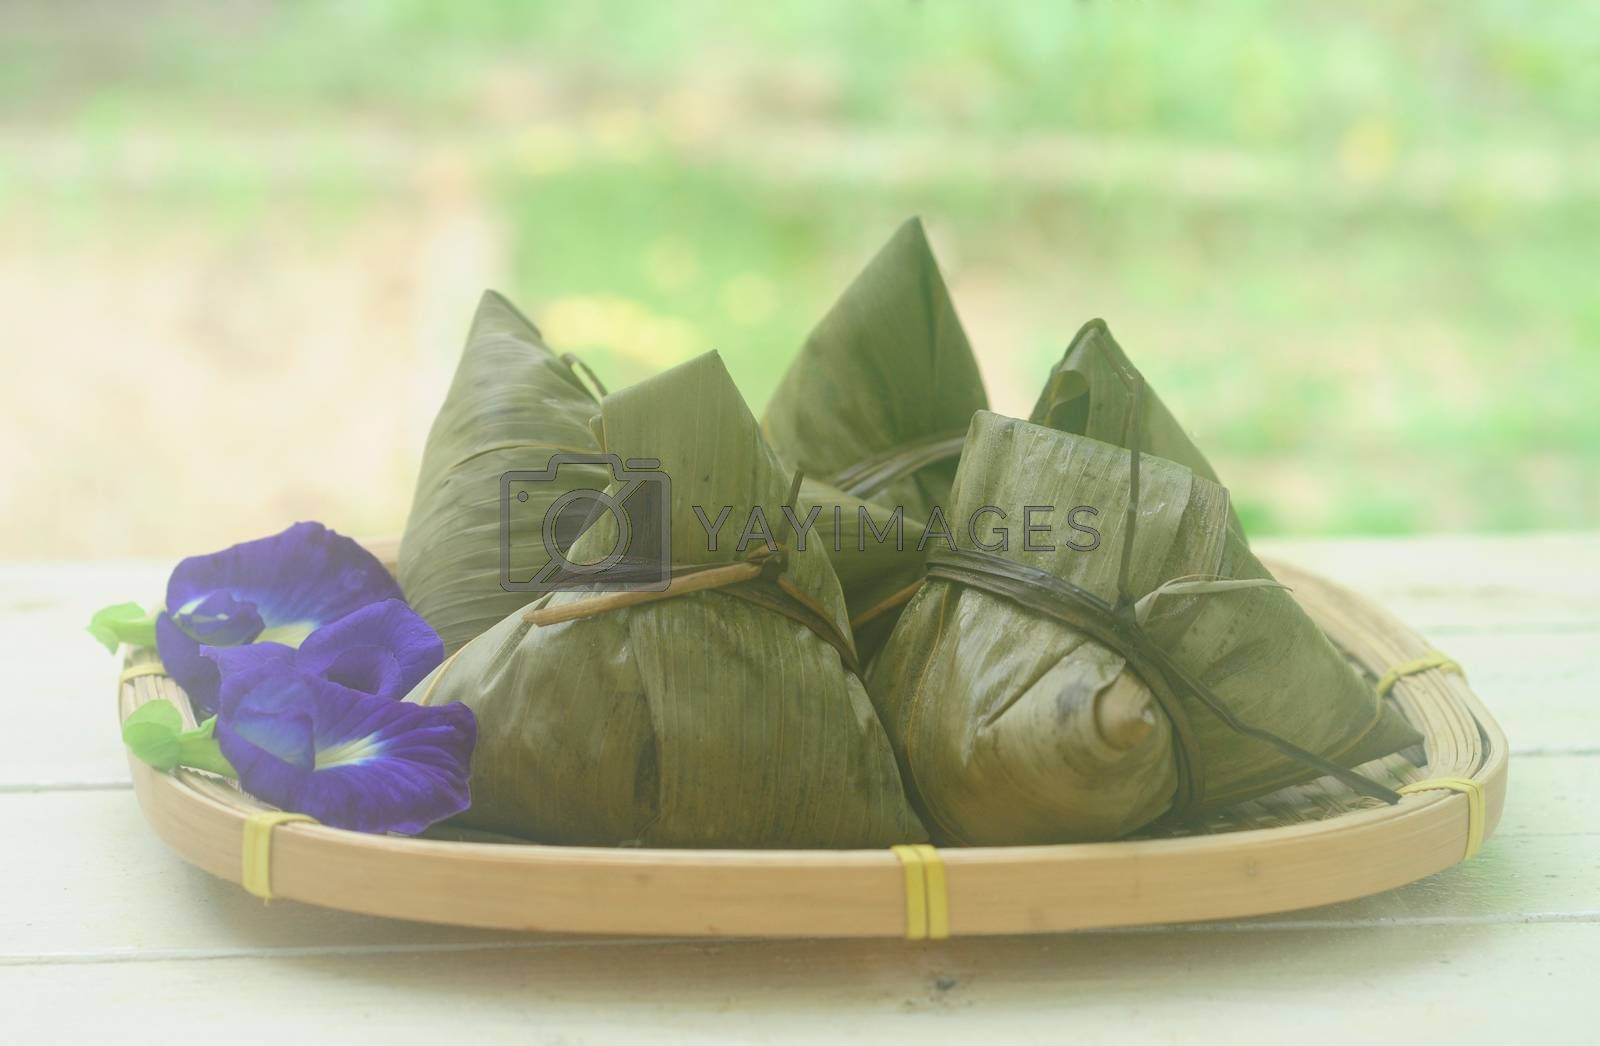 Chinese tradition food - Chinese Steamed Rice Dumpling  with blur background outdoor.Zongzi or traditional chinese sticky rice dumpling usually taken during festival occasion.